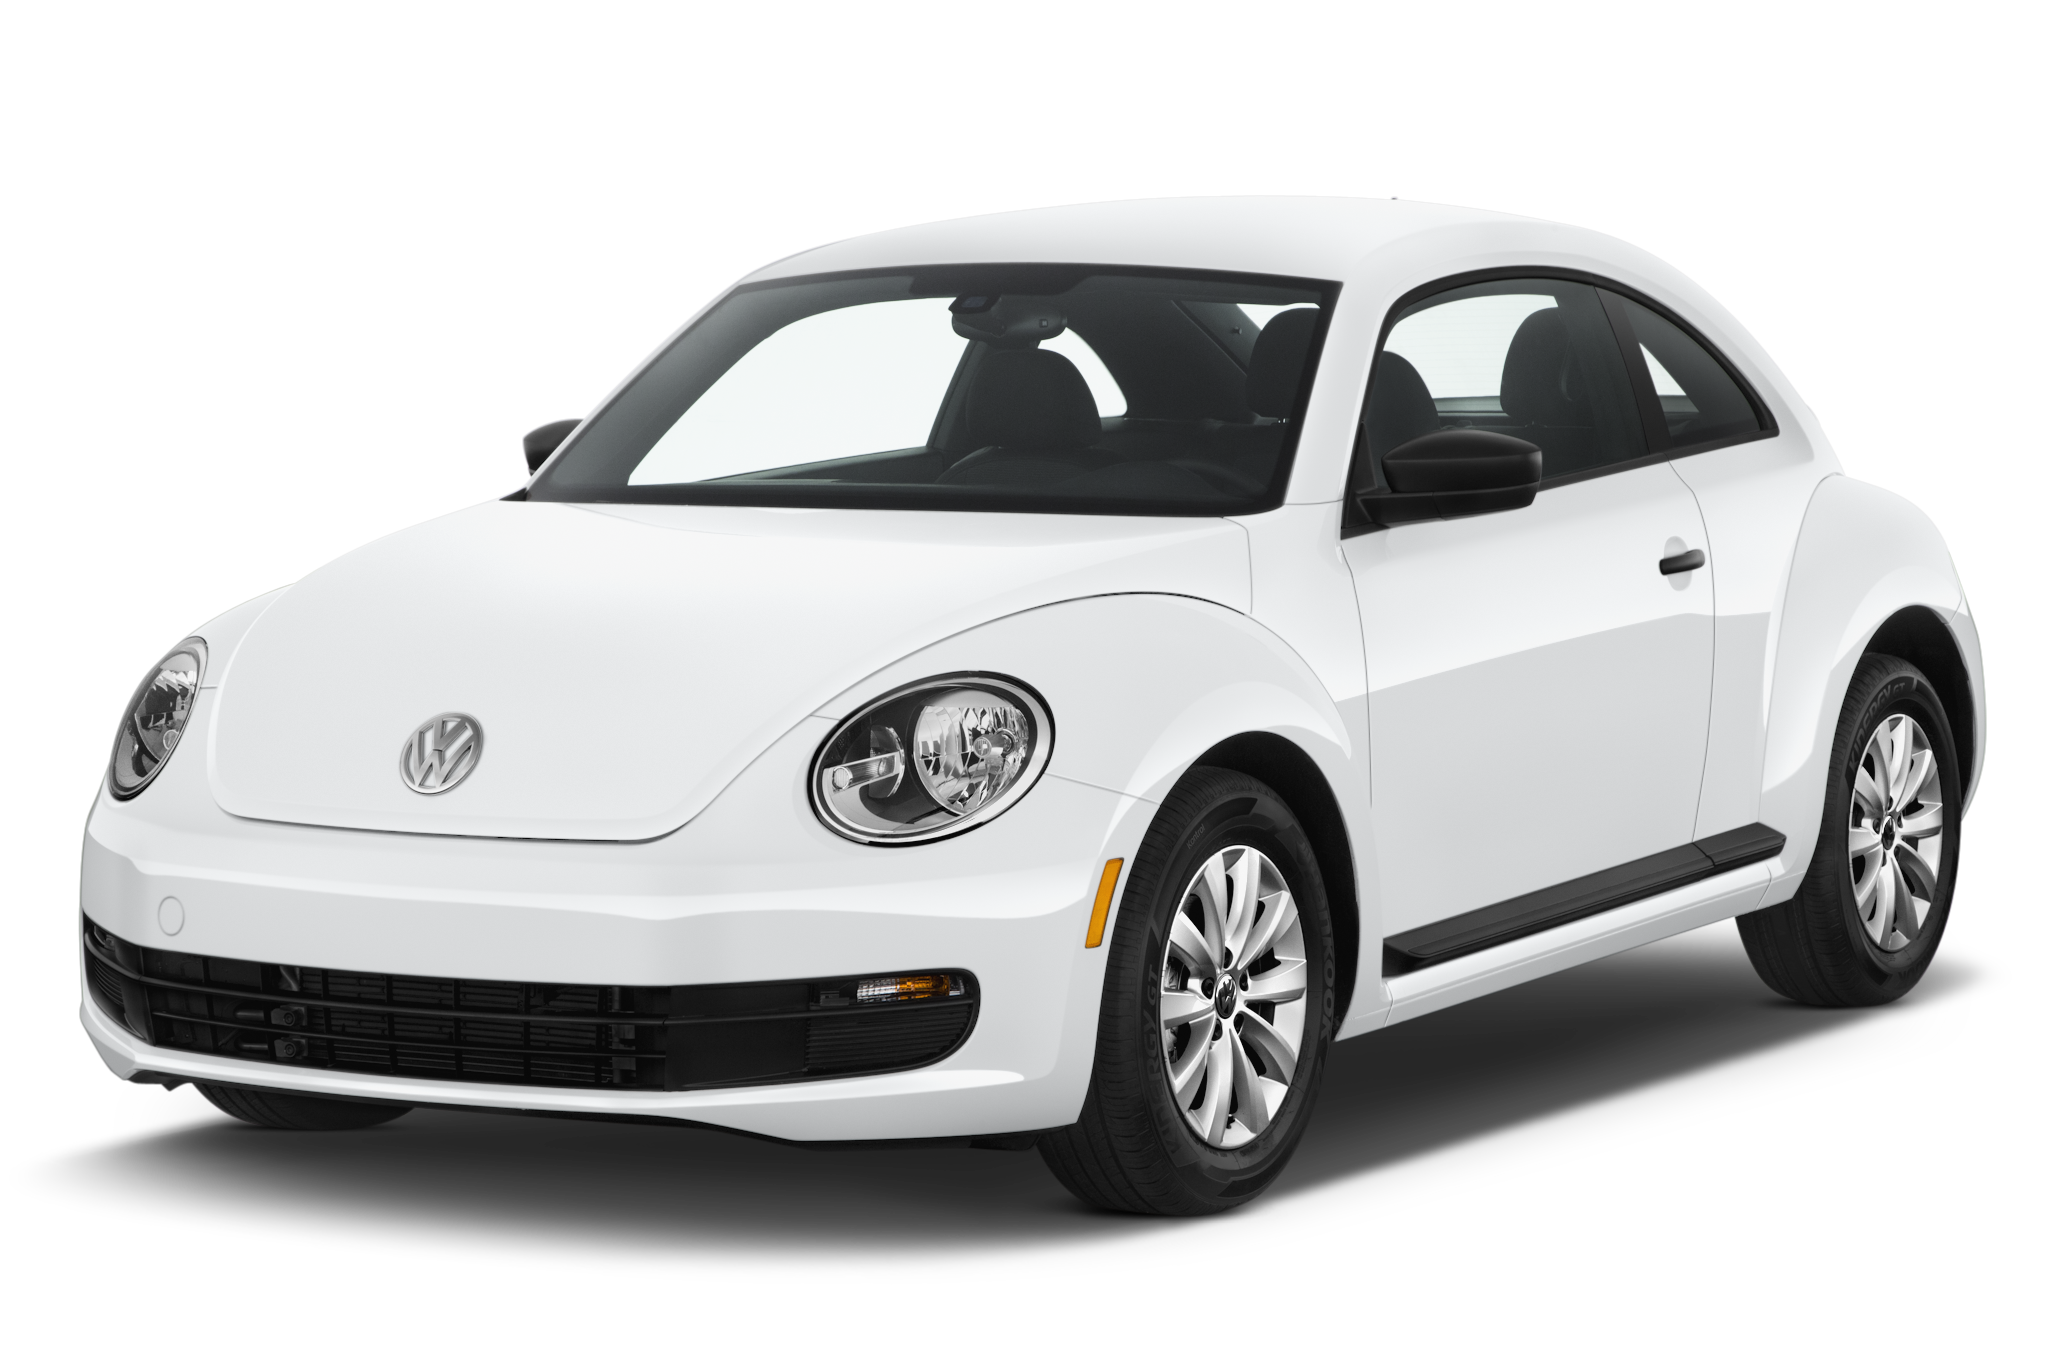 2011 volkswagen new beetle next generation beetle. Black Bedroom Furniture Sets. Home Design Ideas